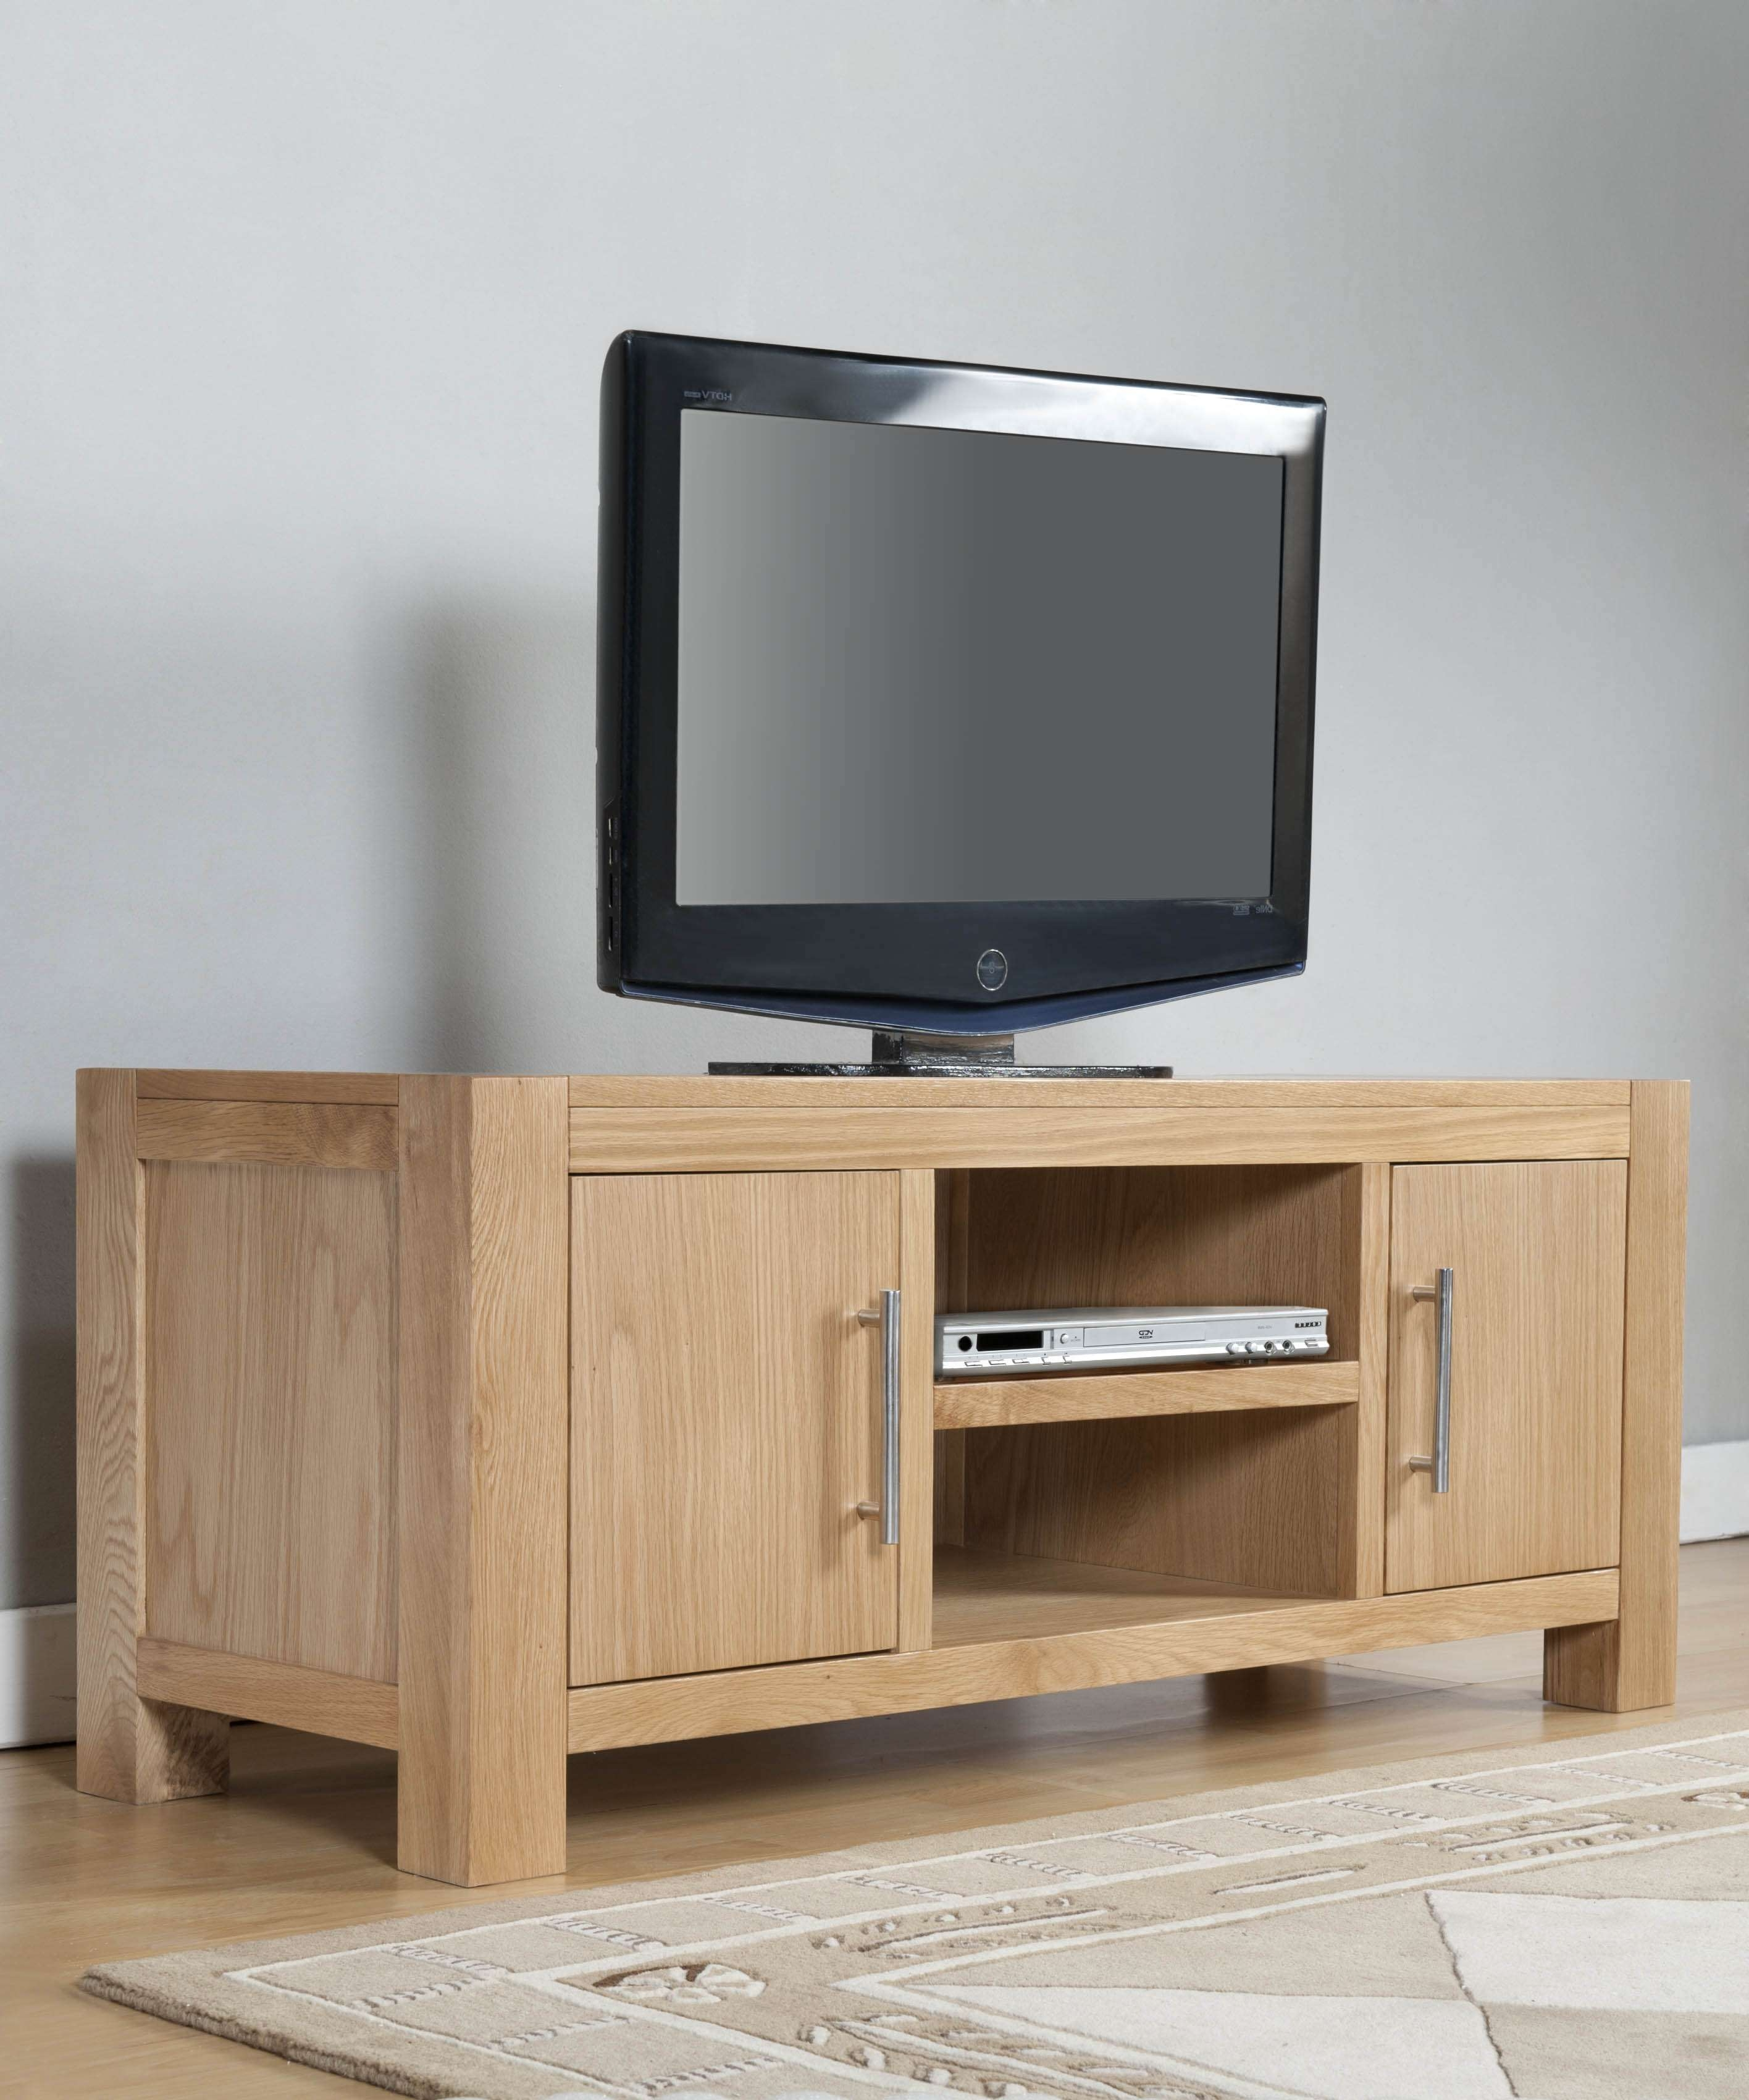 Milano Oak 2 Door Tv Stand With Shelf | Oak Furniture Solutions For Large Oak Tv Cabinets (View 12 of 20)